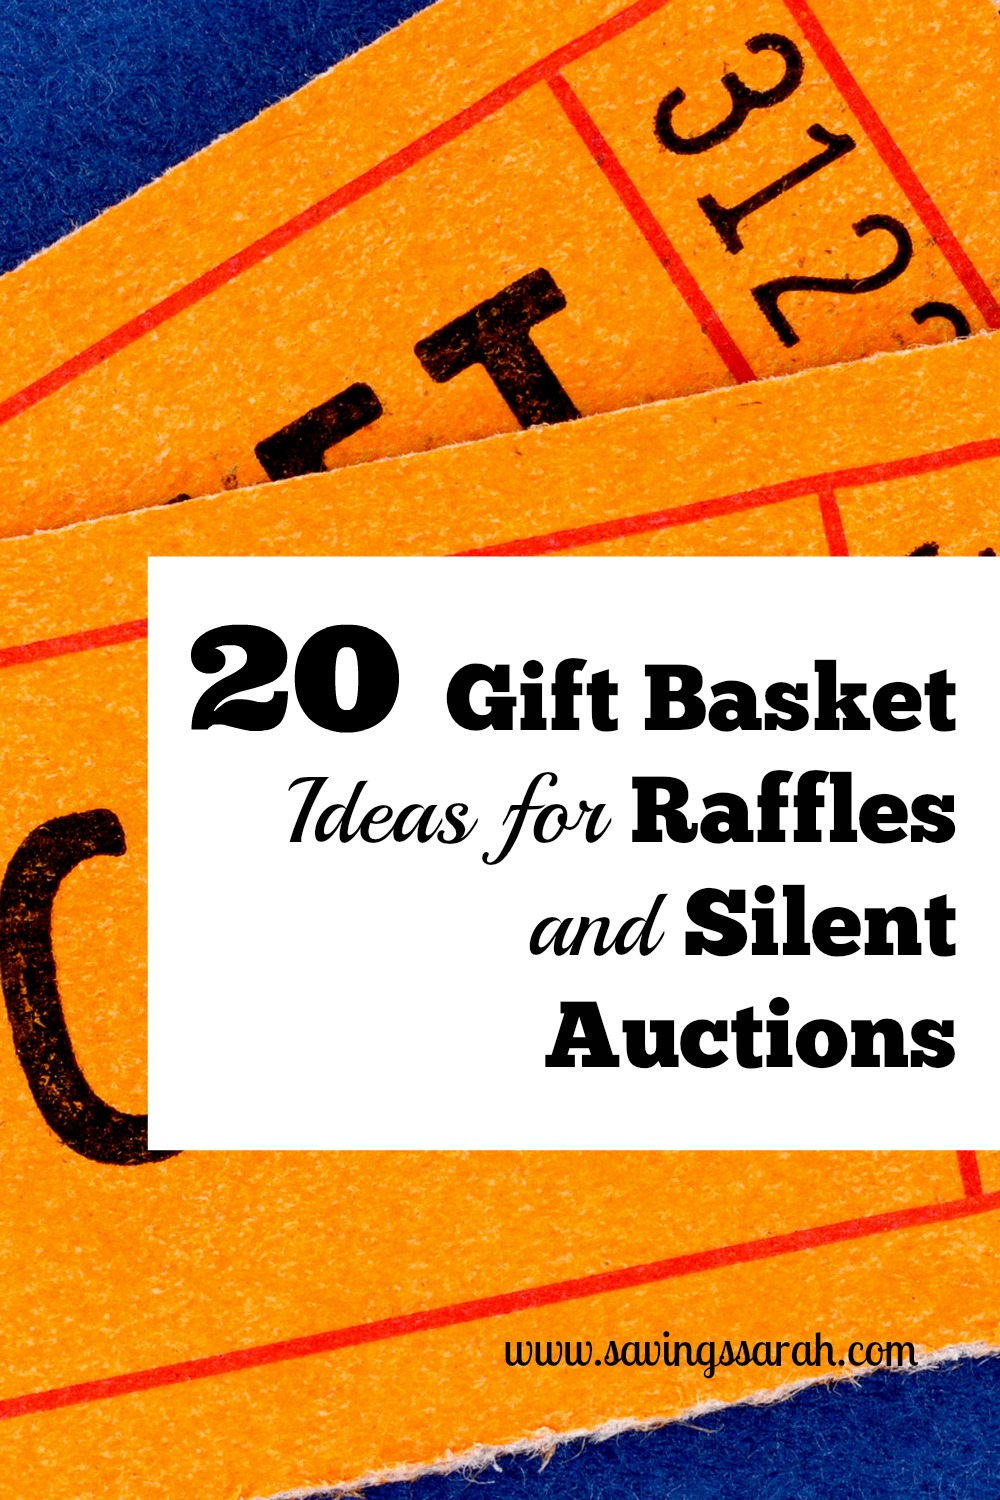 raffle ideas